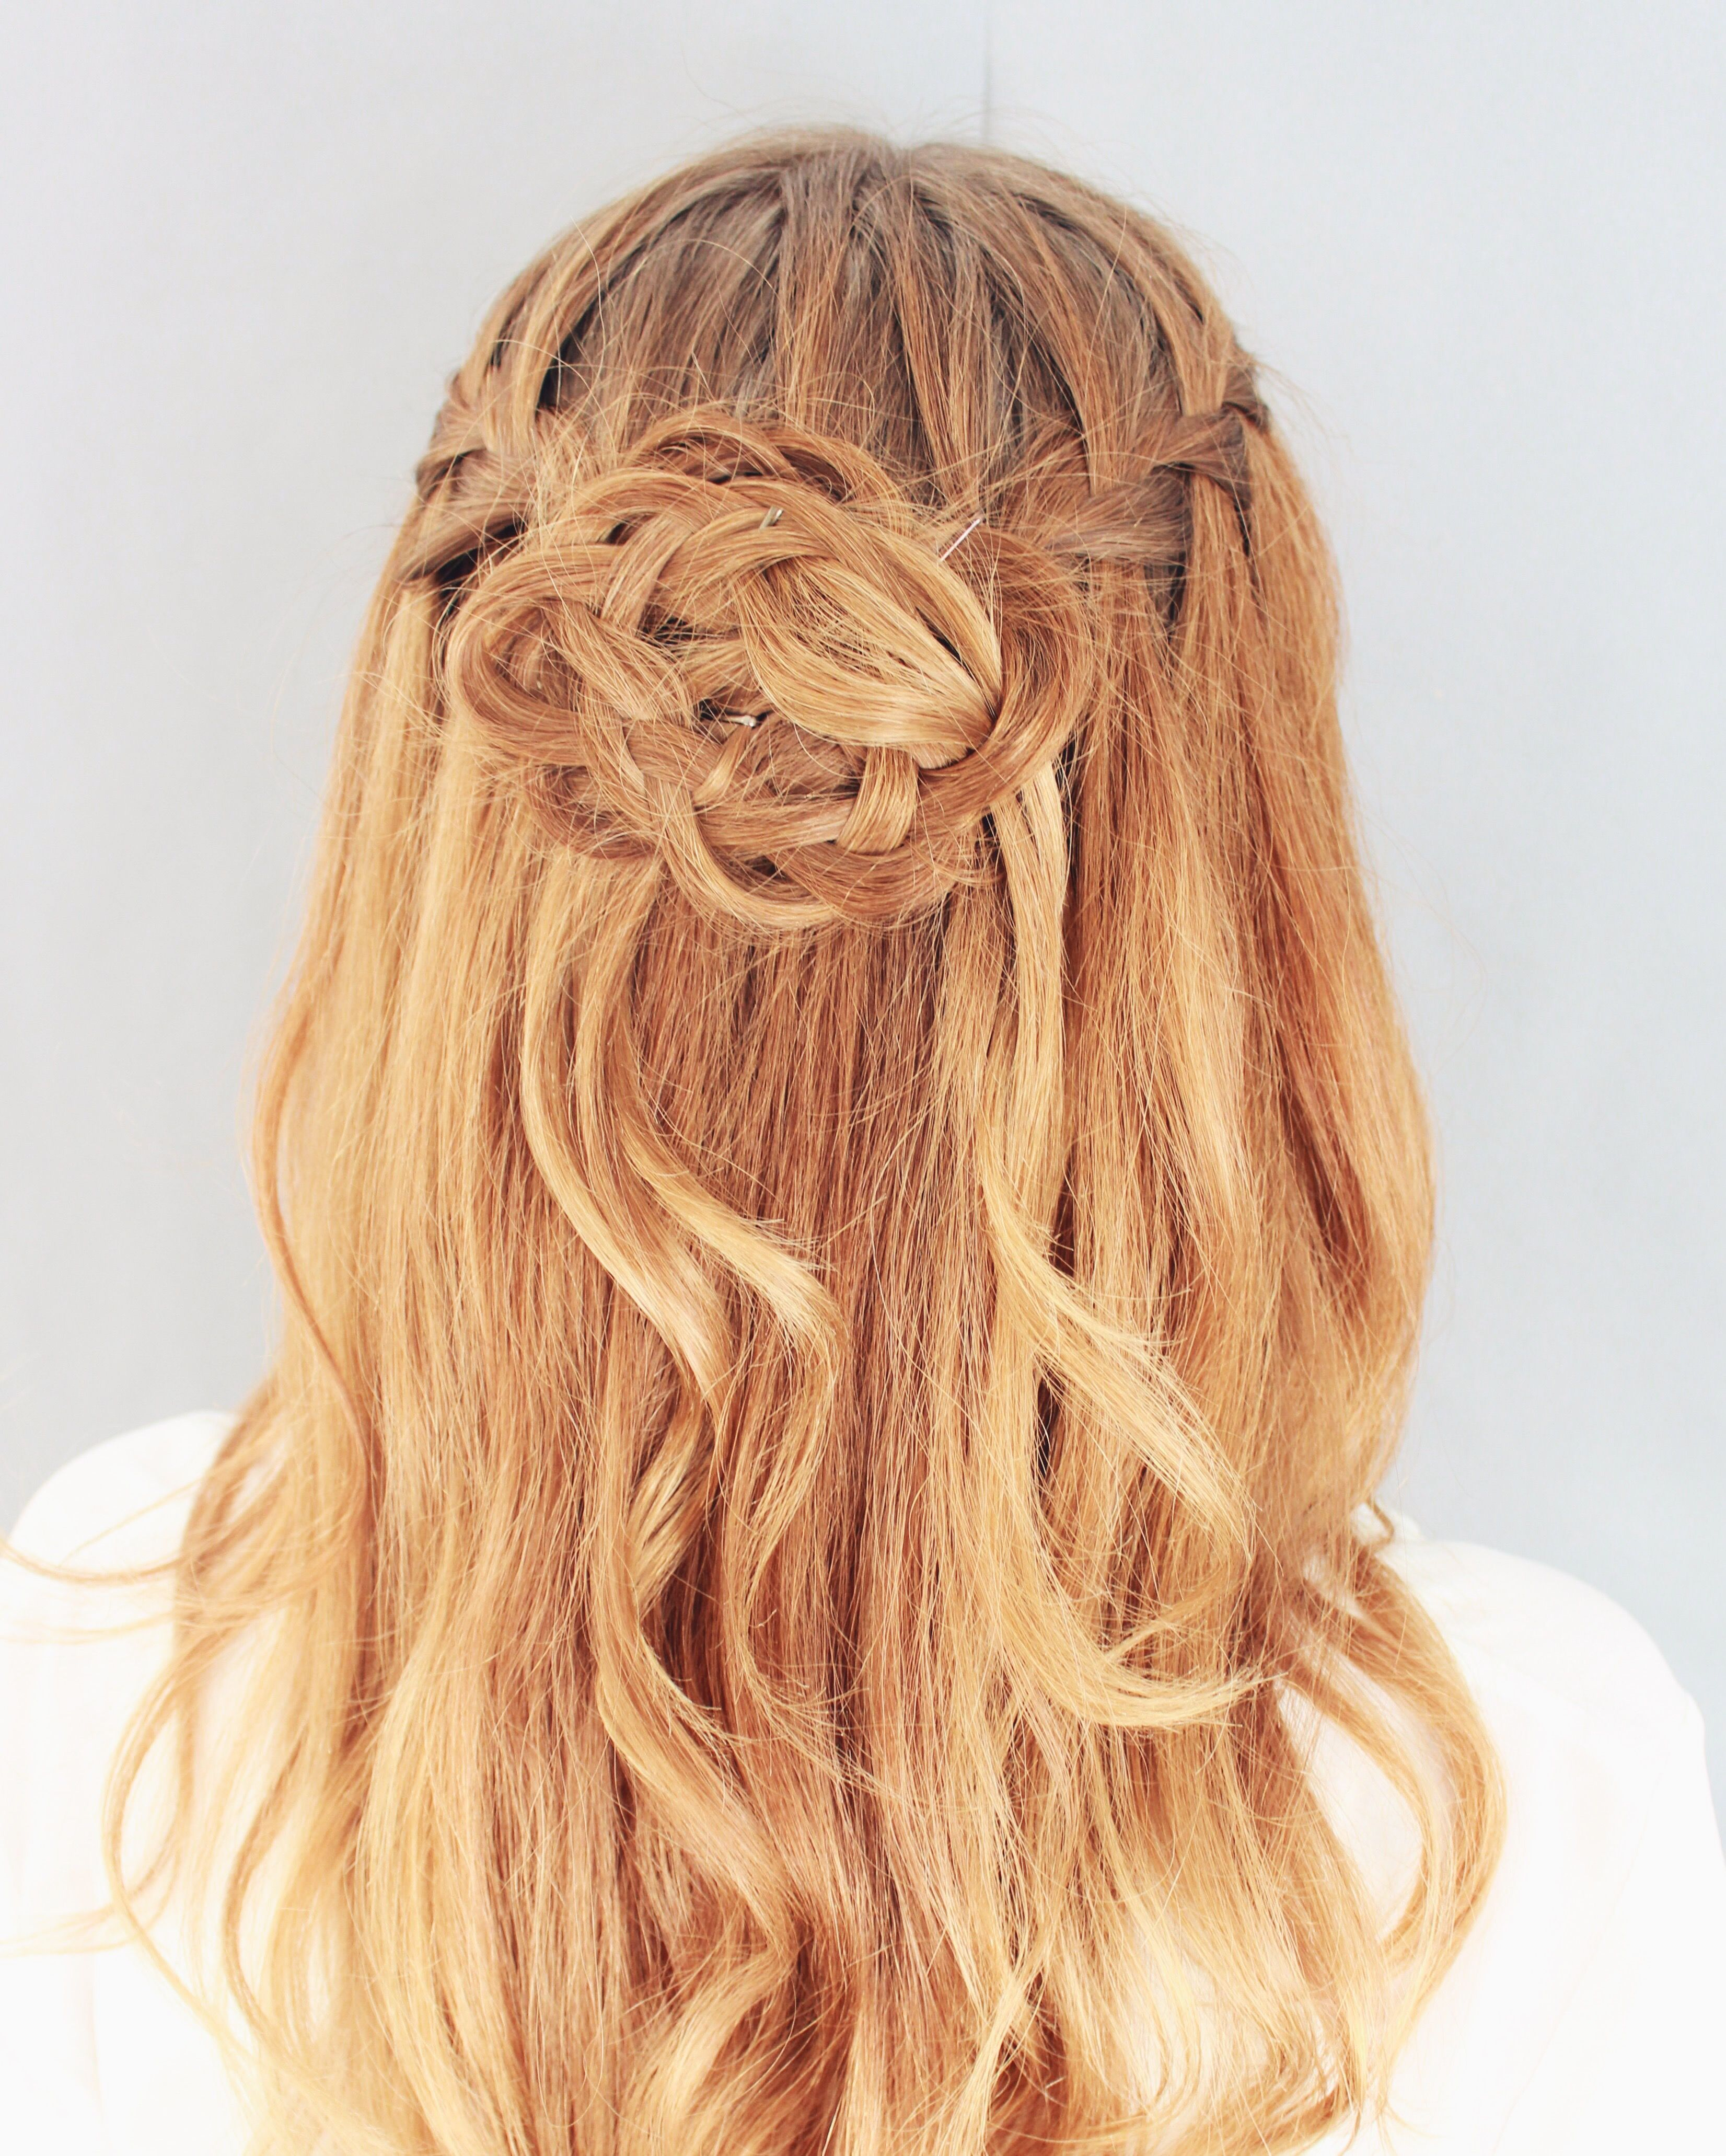 3 Holiday Hairstyles For Christmas New Years Beauty Stories Waterfall Hairstyle Amp Beauty Bobh In 2020 Waterfall Hairstyle Hair Styles Holiday Hairstyles